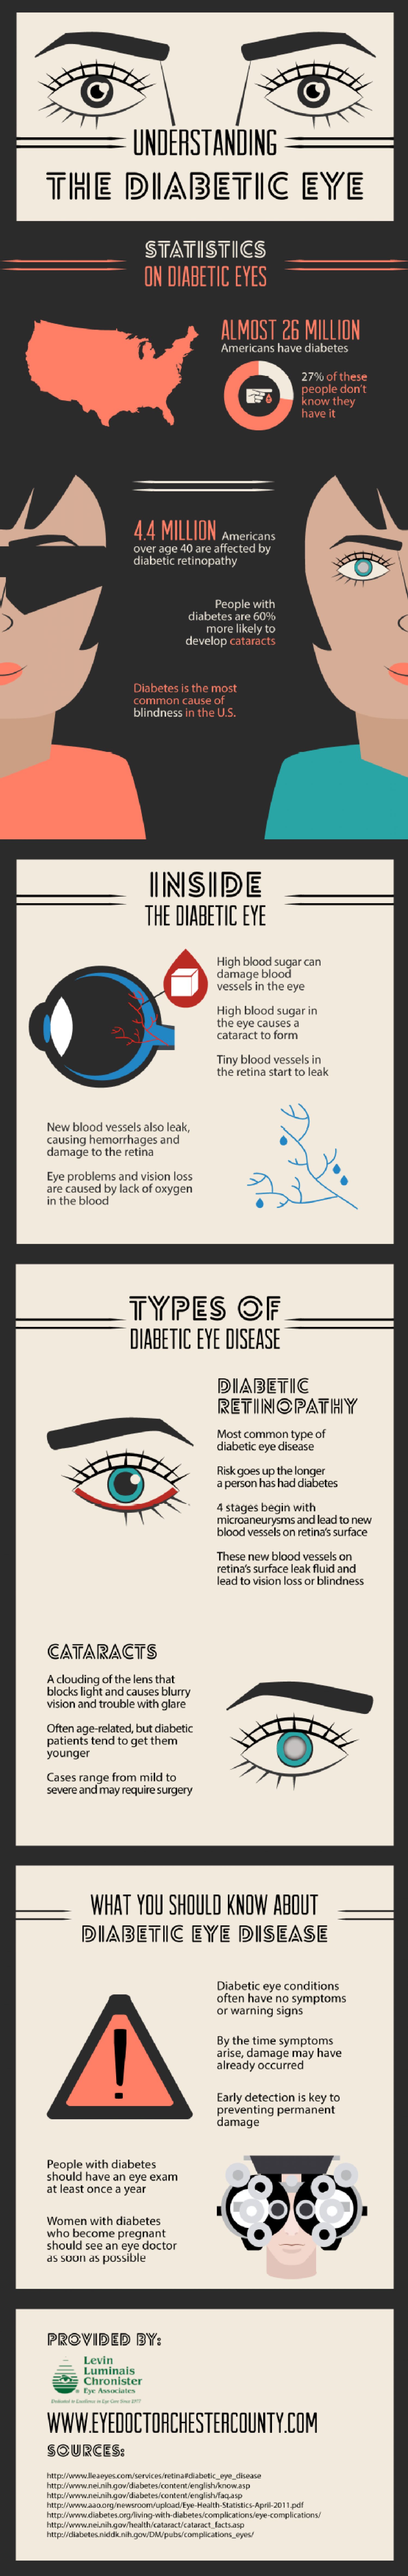 Understanding the Diabetic Eye Infographic